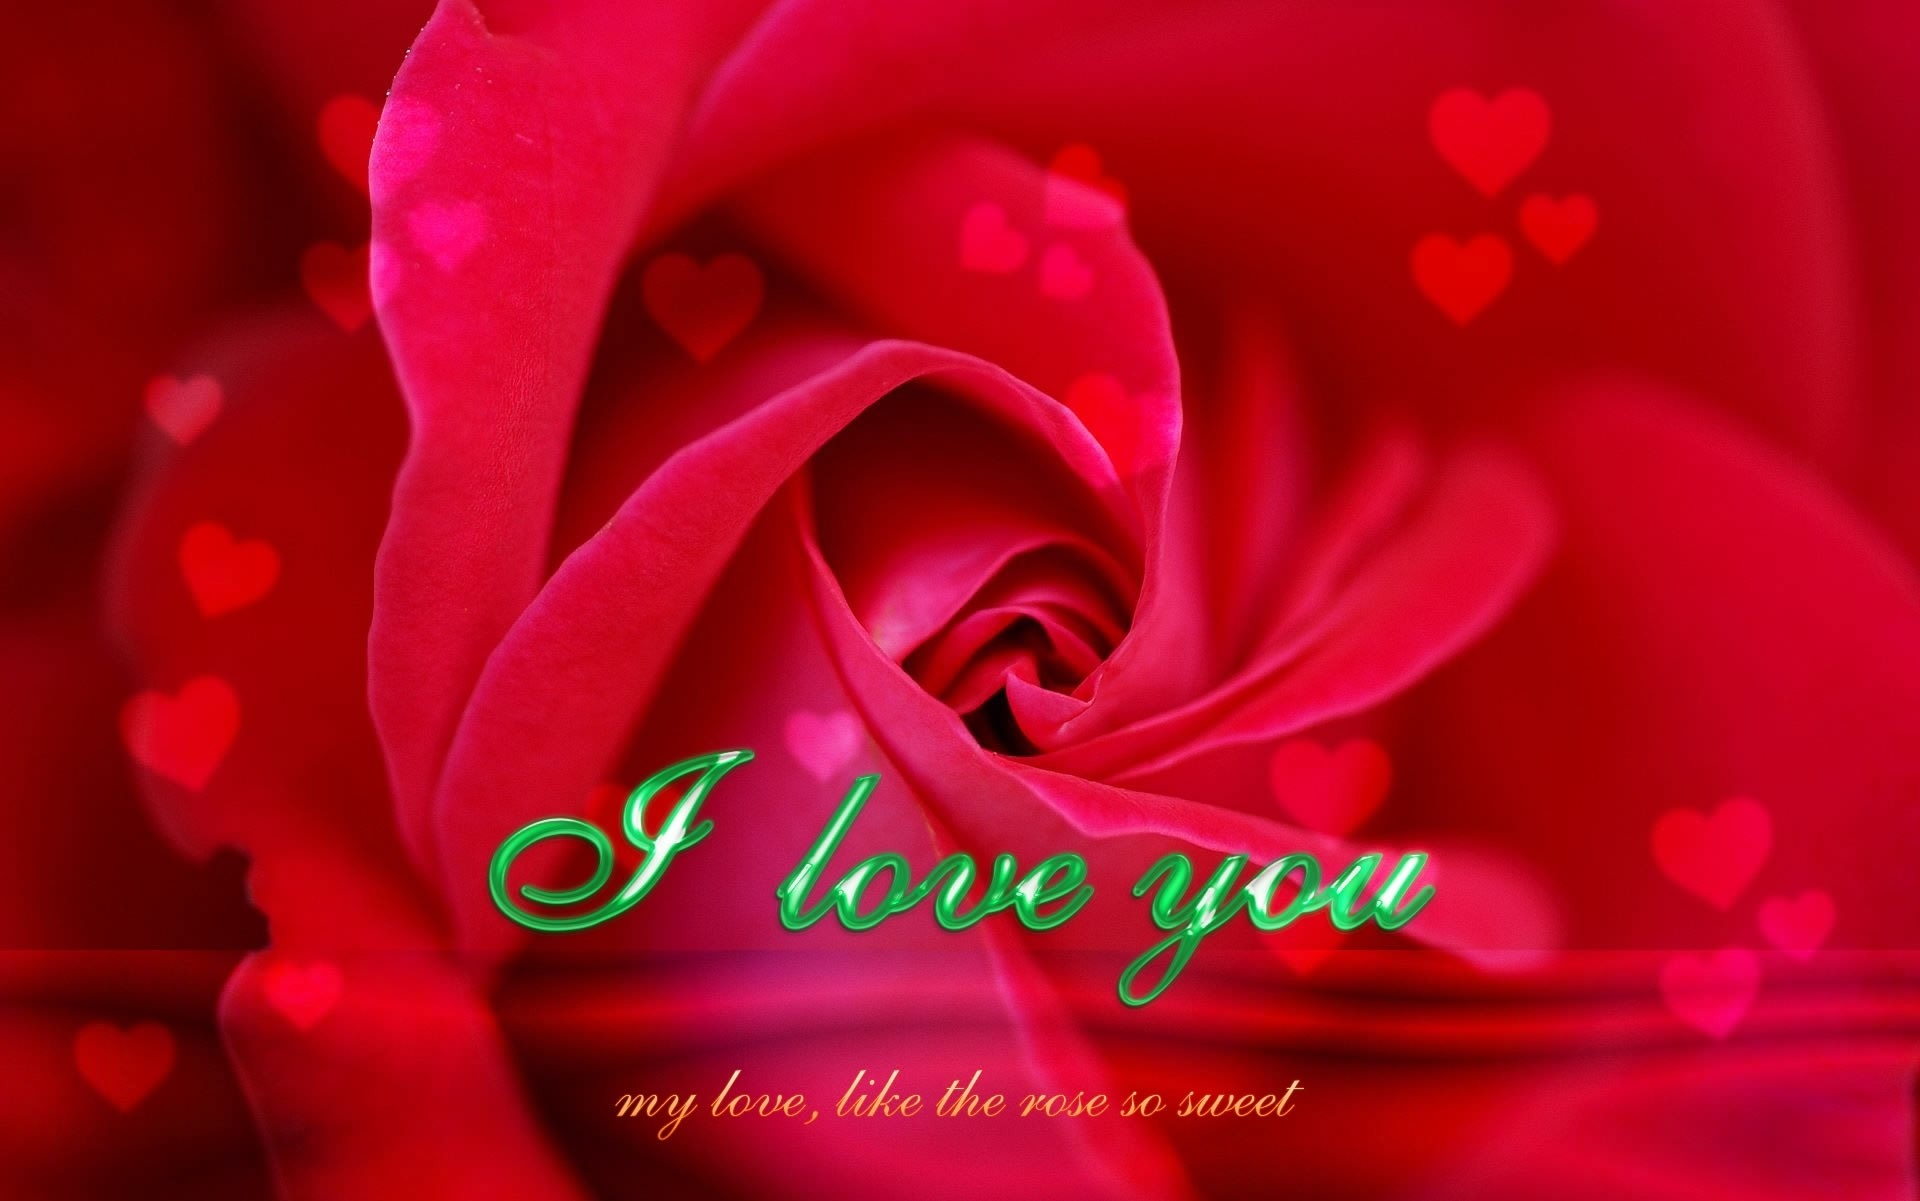 1920x1201 New Red Rose I Love U Quotes Knumathise Red Rose I Love You Wallpaper Images